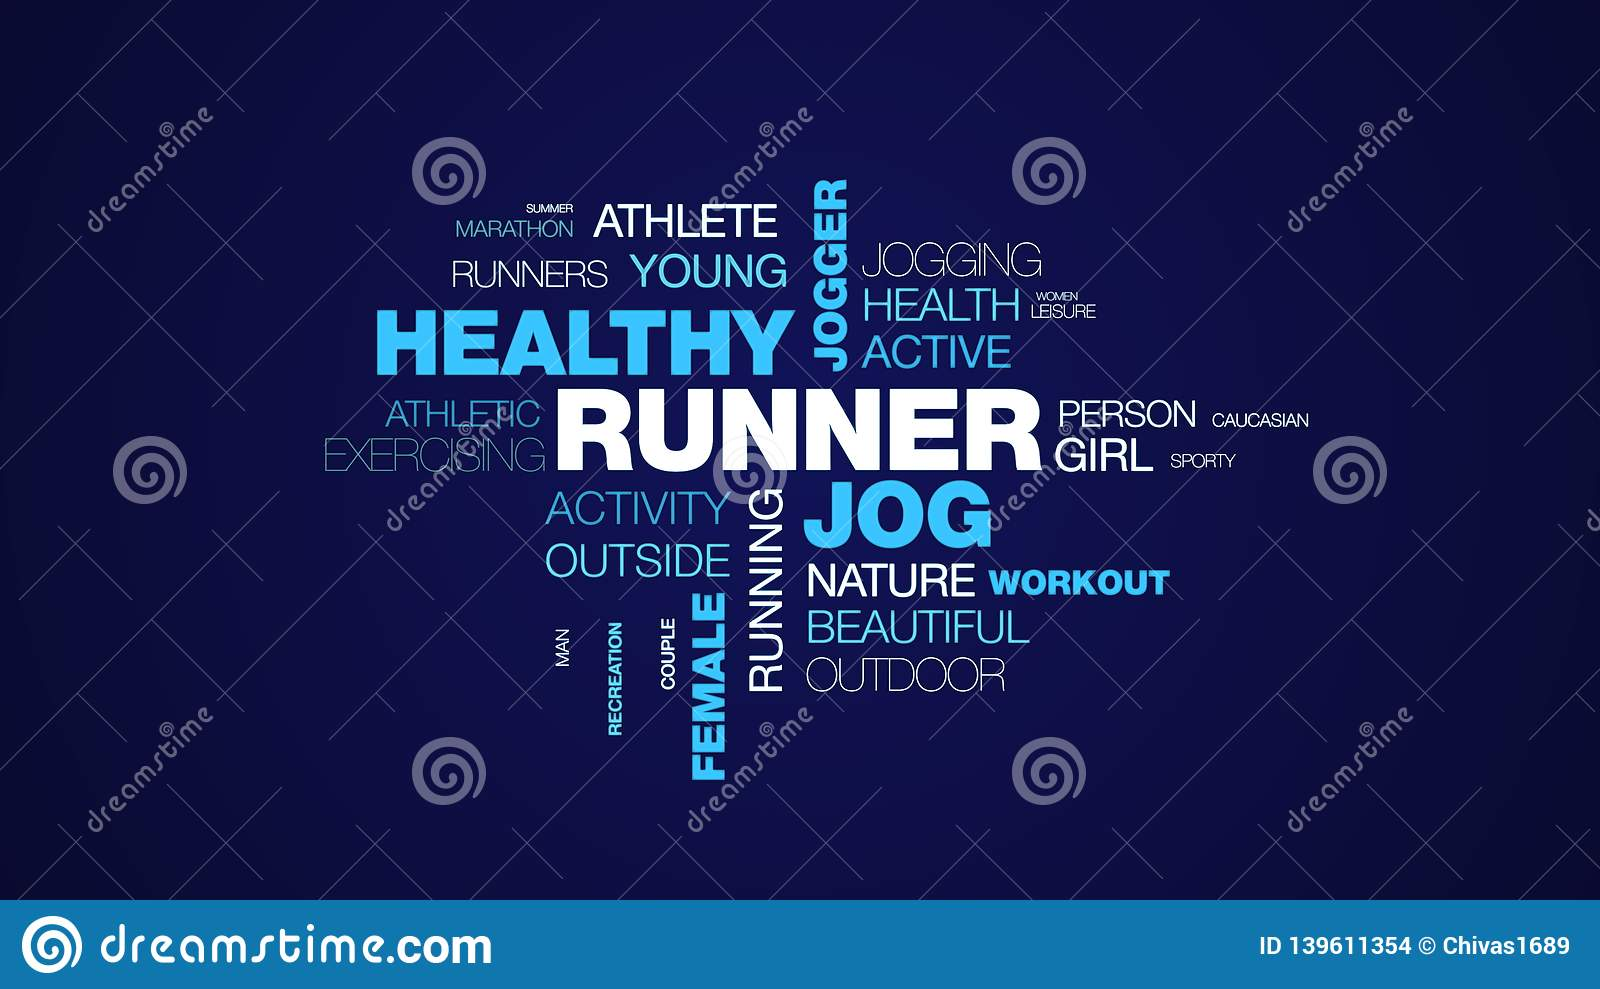 13ac7c0847ea1 Royalty-Free Illustration. Runner jog healthy jogger lifestyle fit fitness  sport exercise female people animated word cloud background in